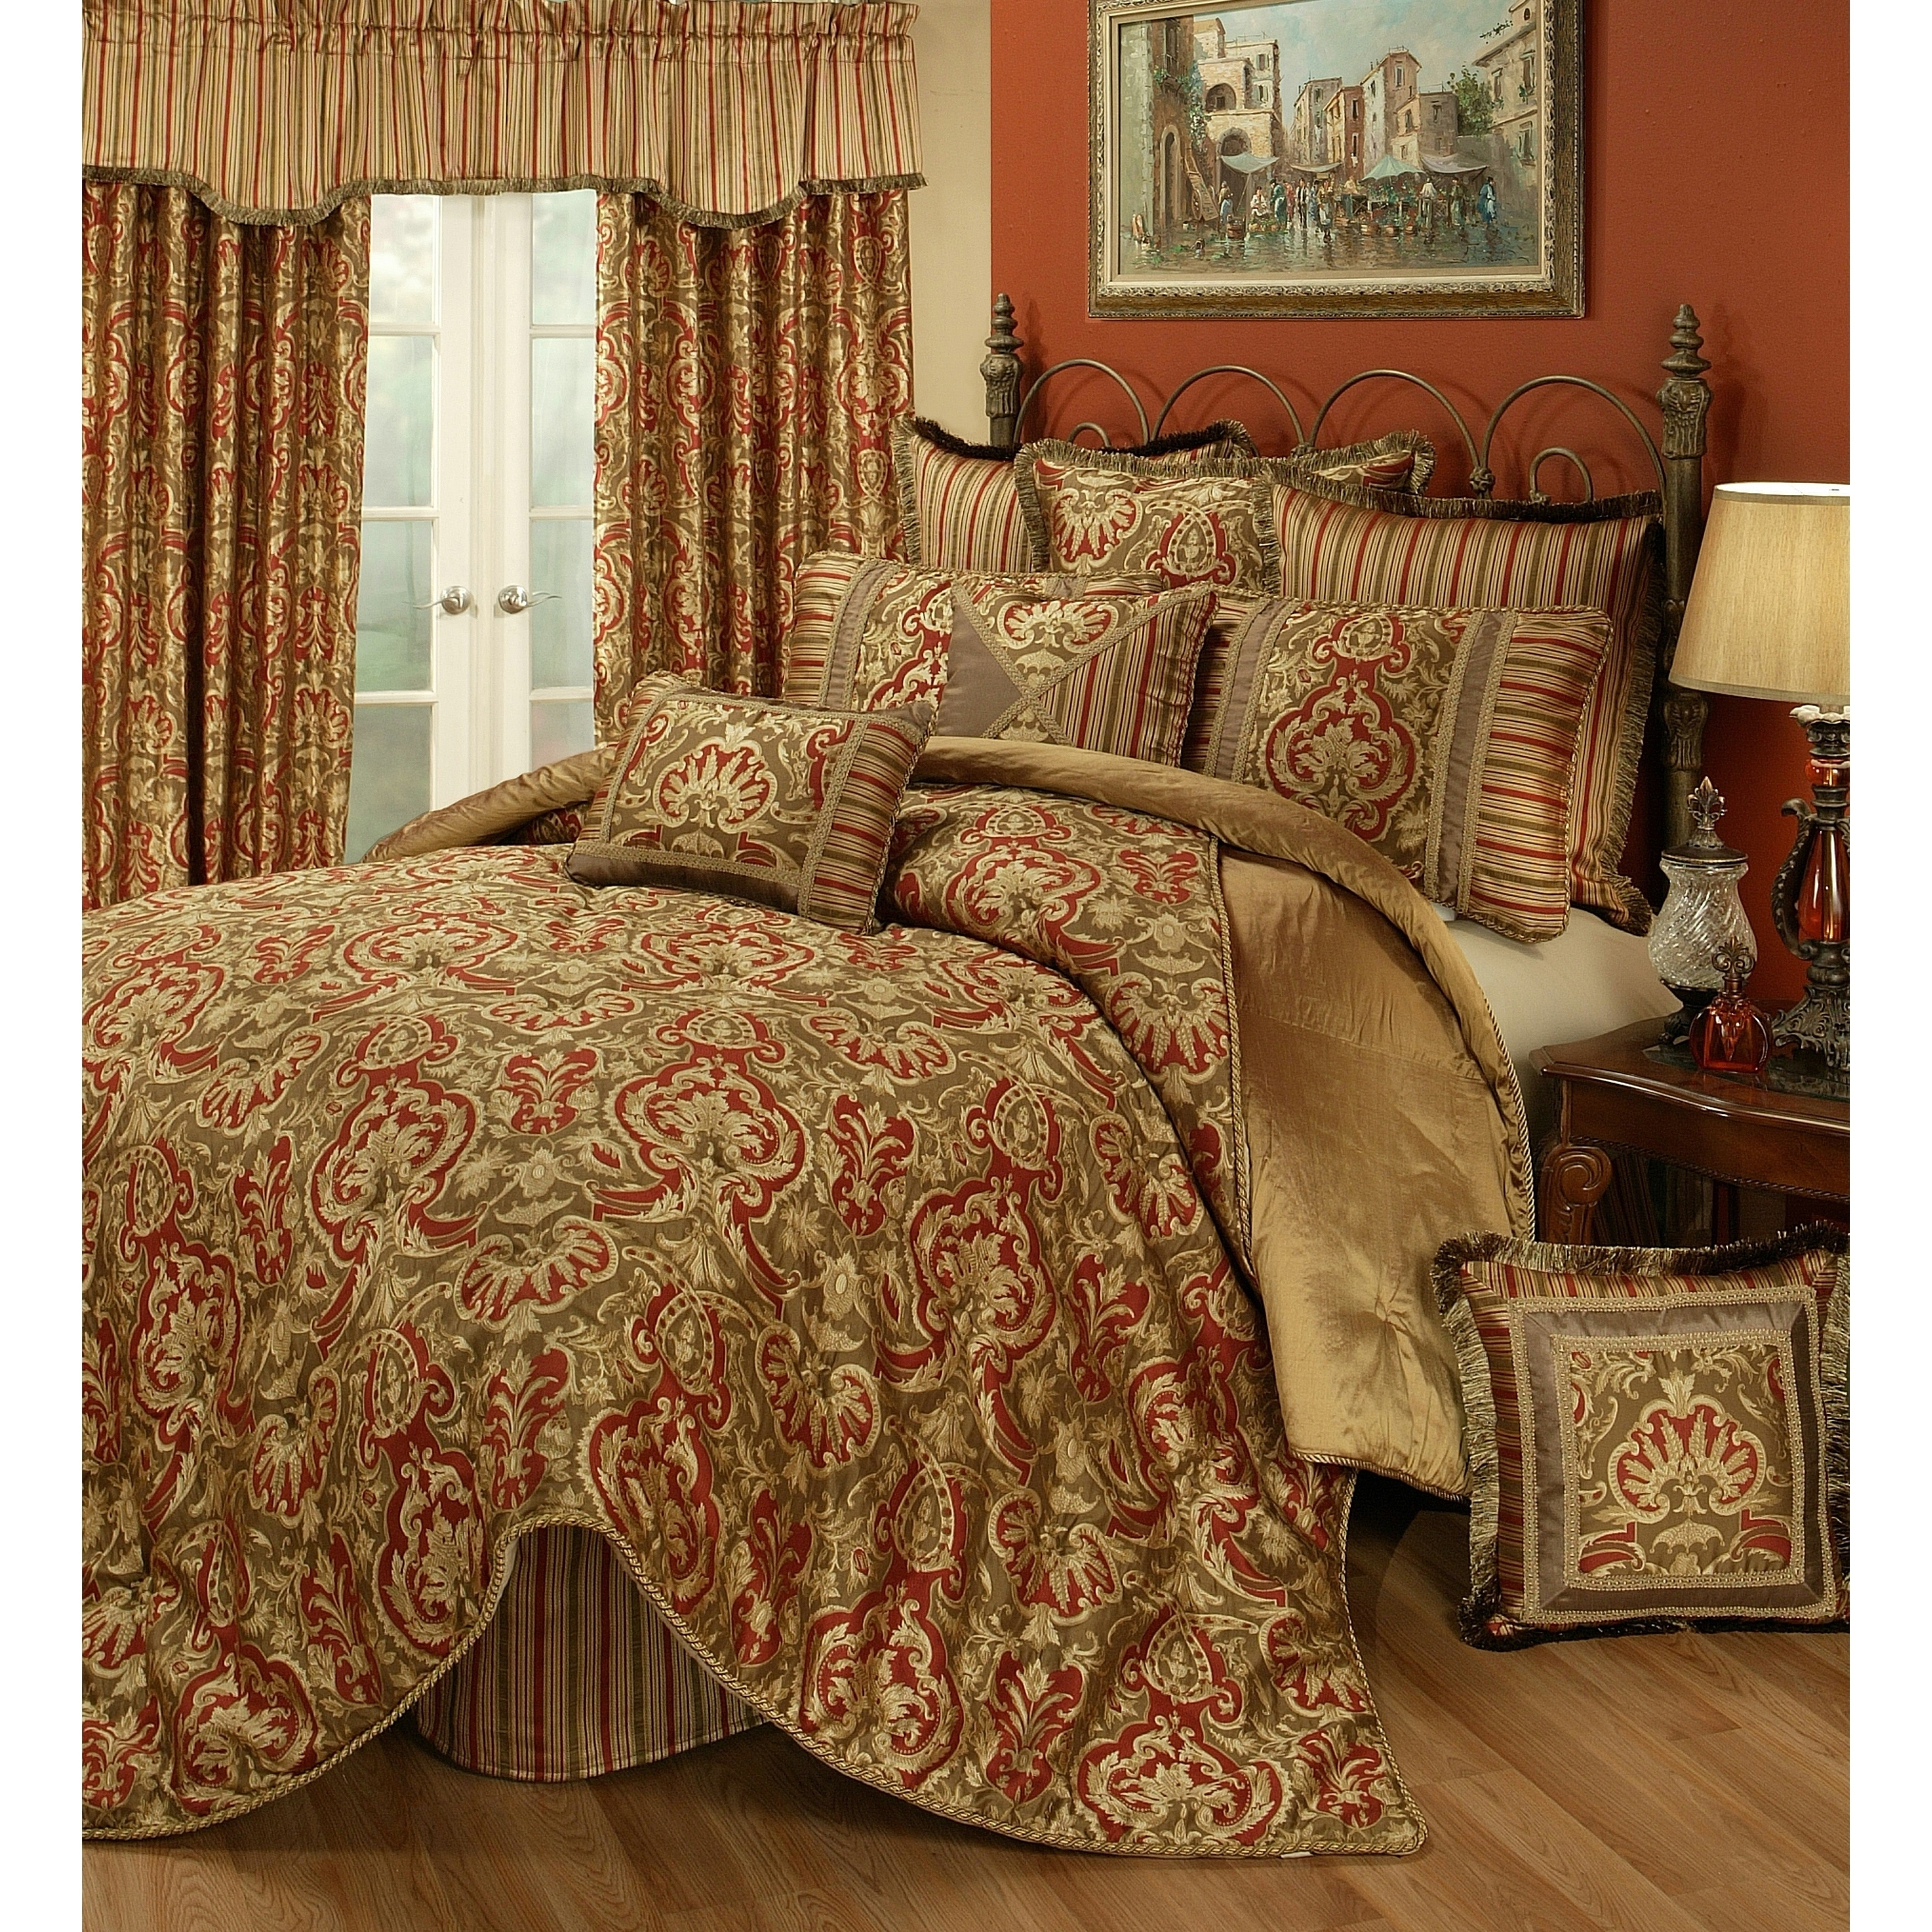 Pchf Botticelli Rust 3 Piece Luxury Duvet Set Overstock 23122517